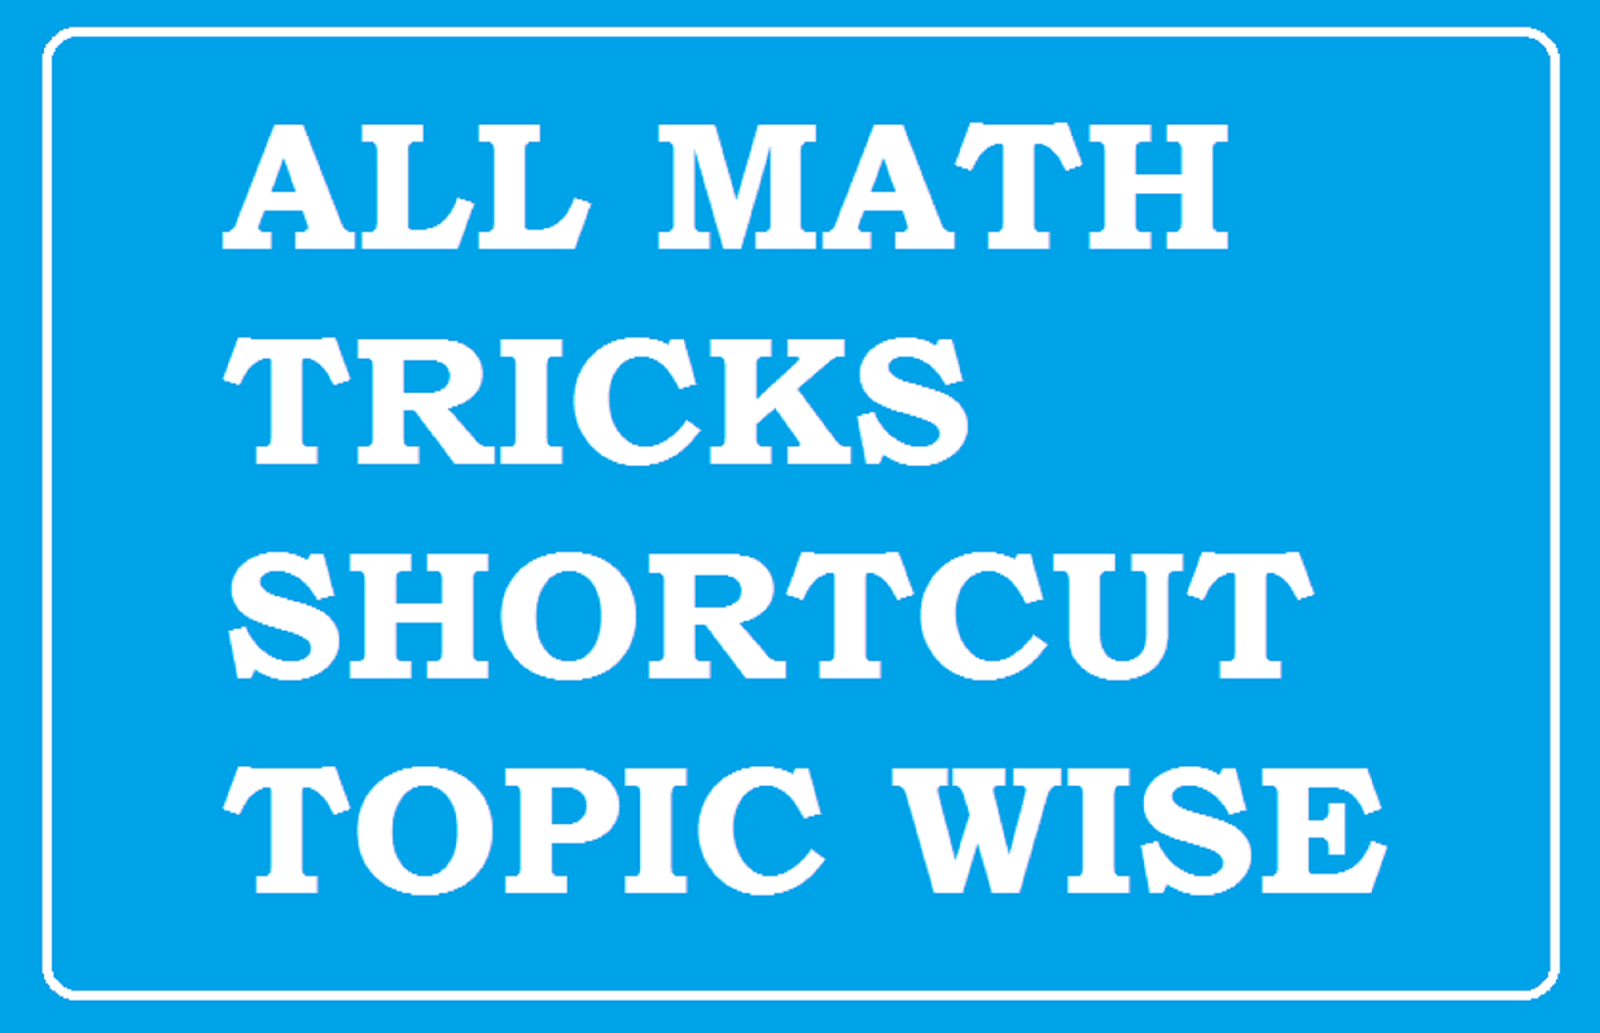 TNPSC Group 2A Maths Tricks Videos - TNPSC Group 2A Maths Videos